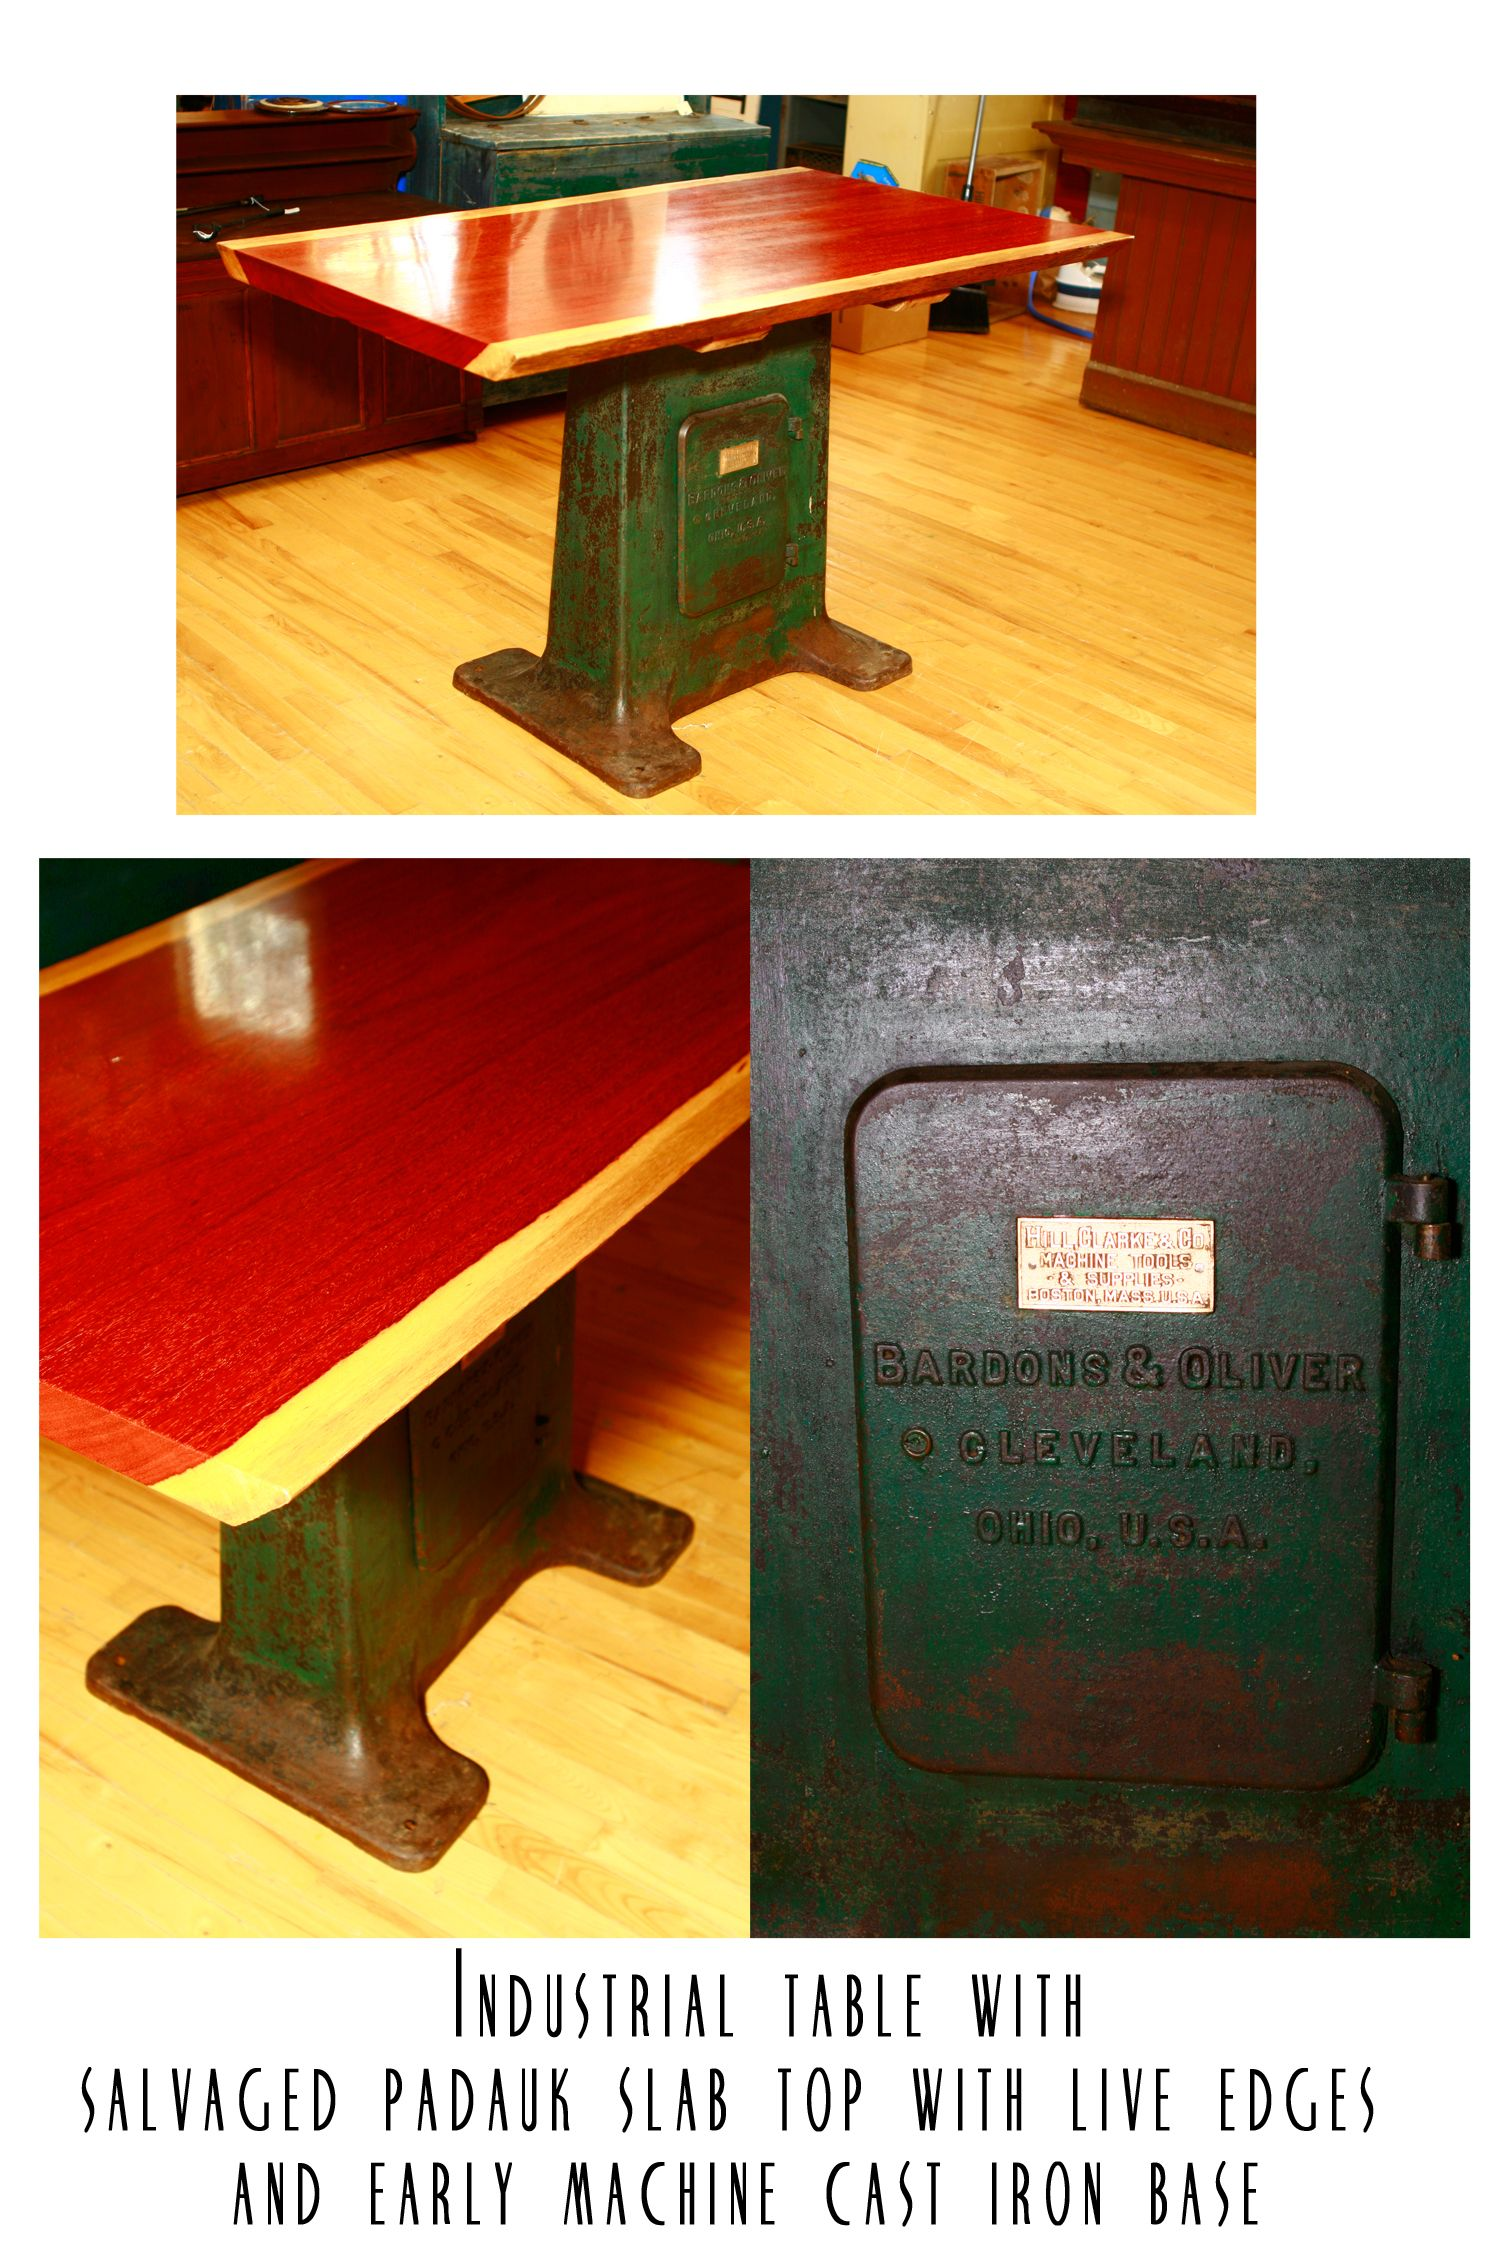 Custom Made Industrial Table The Top Is A Beautiful Slab Of Salvaged Padauk Wood Finished With Live Edge Industrial Table Cool Kitchens Architectural Salvage